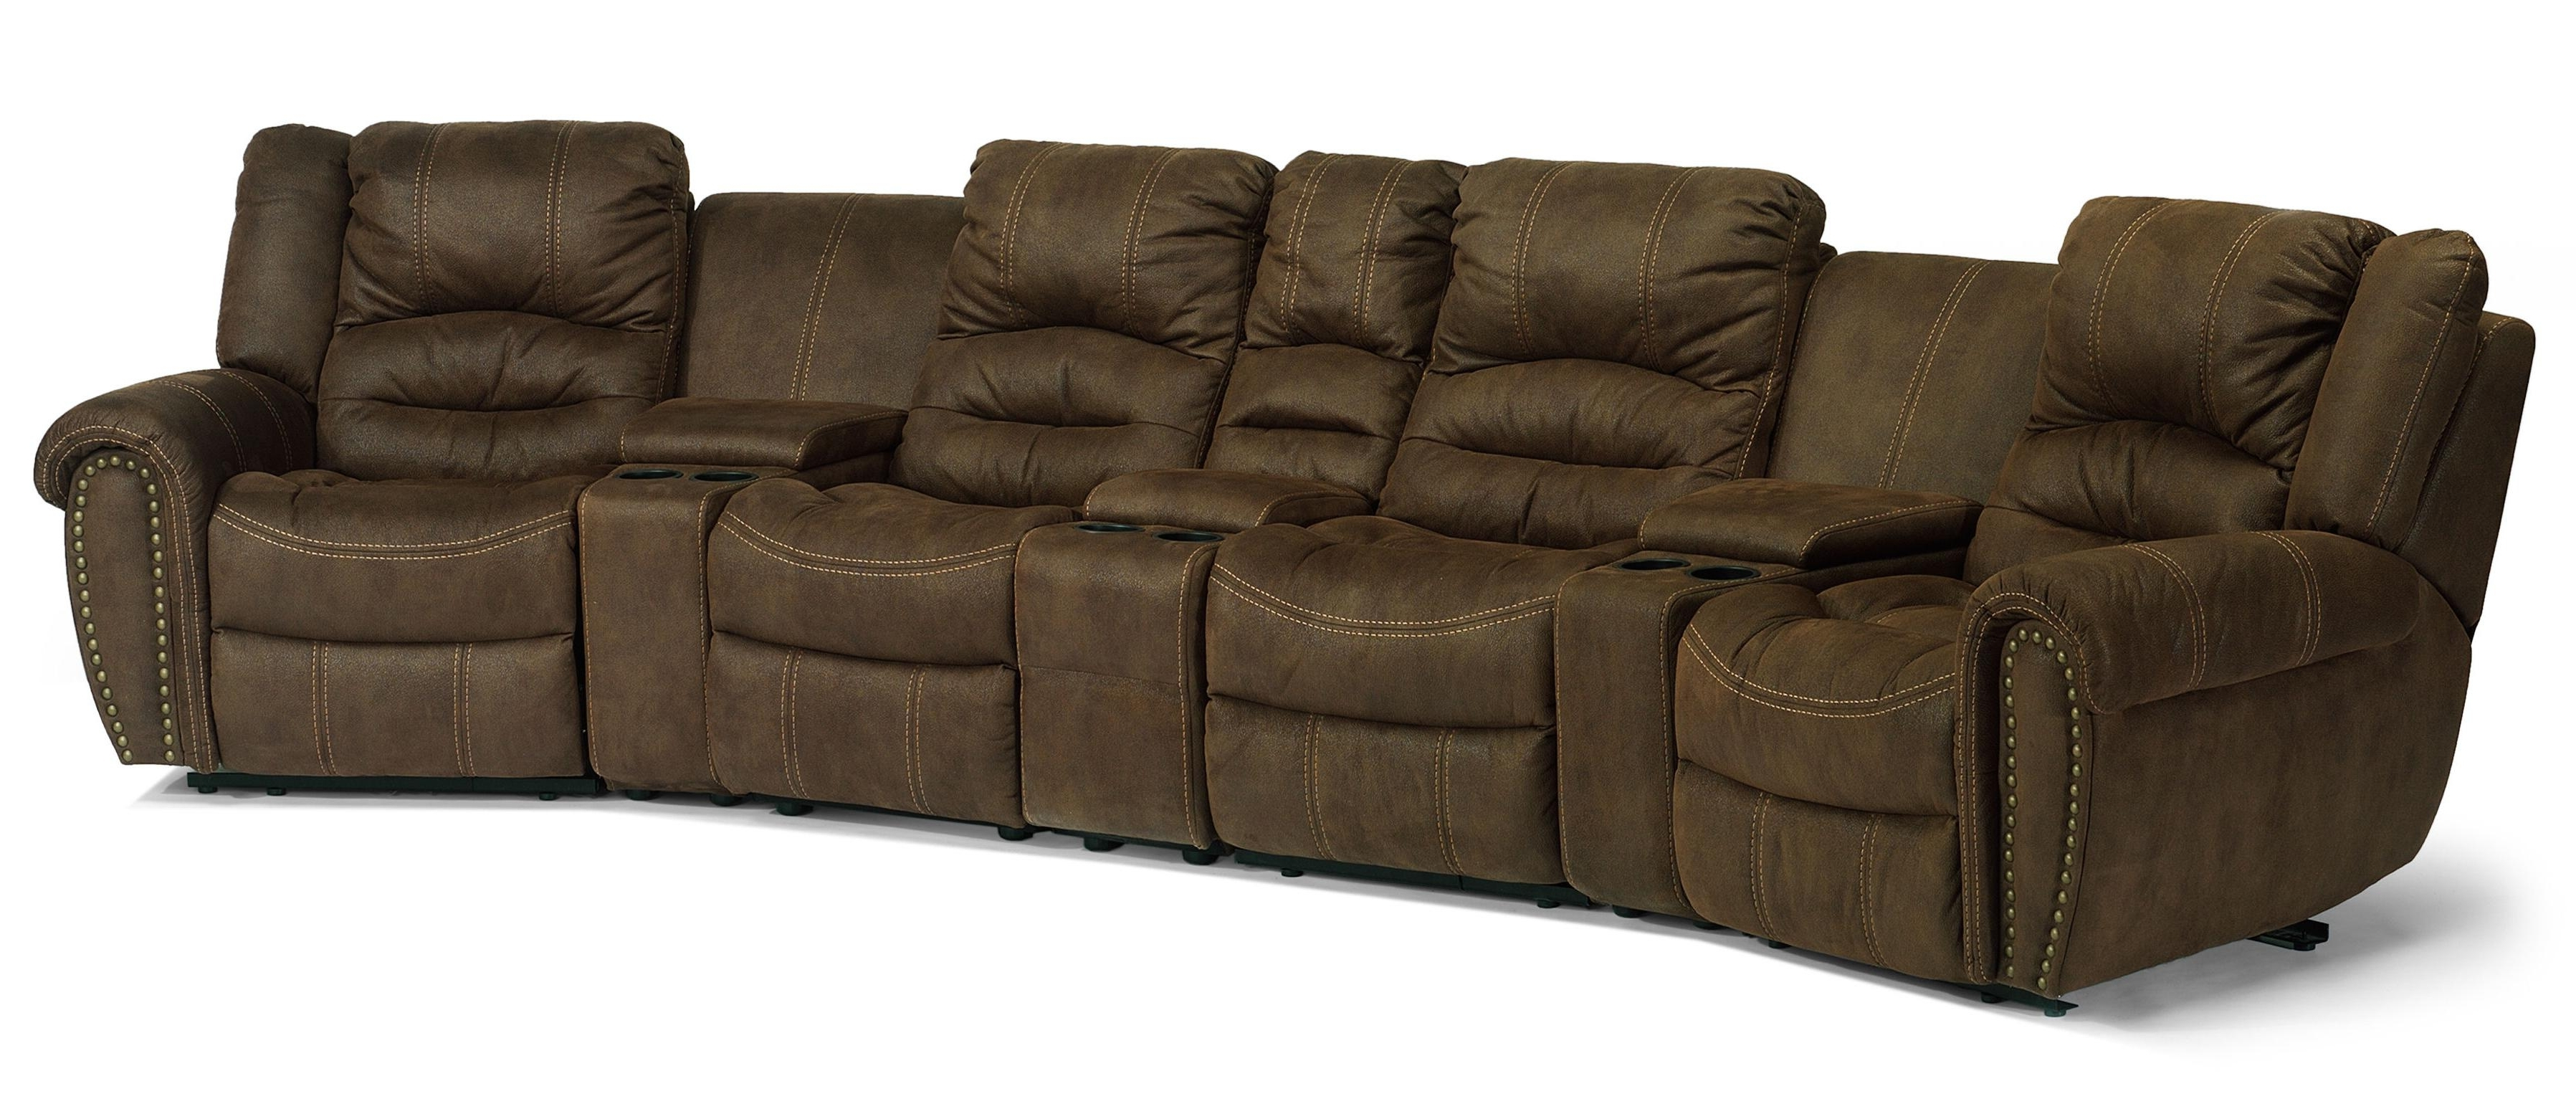 Most Current Flexsteel Latitudes – New Town Curved Reclining Sectional Sofa Intended For Curved Recliner Sofas (View 1 of 15)